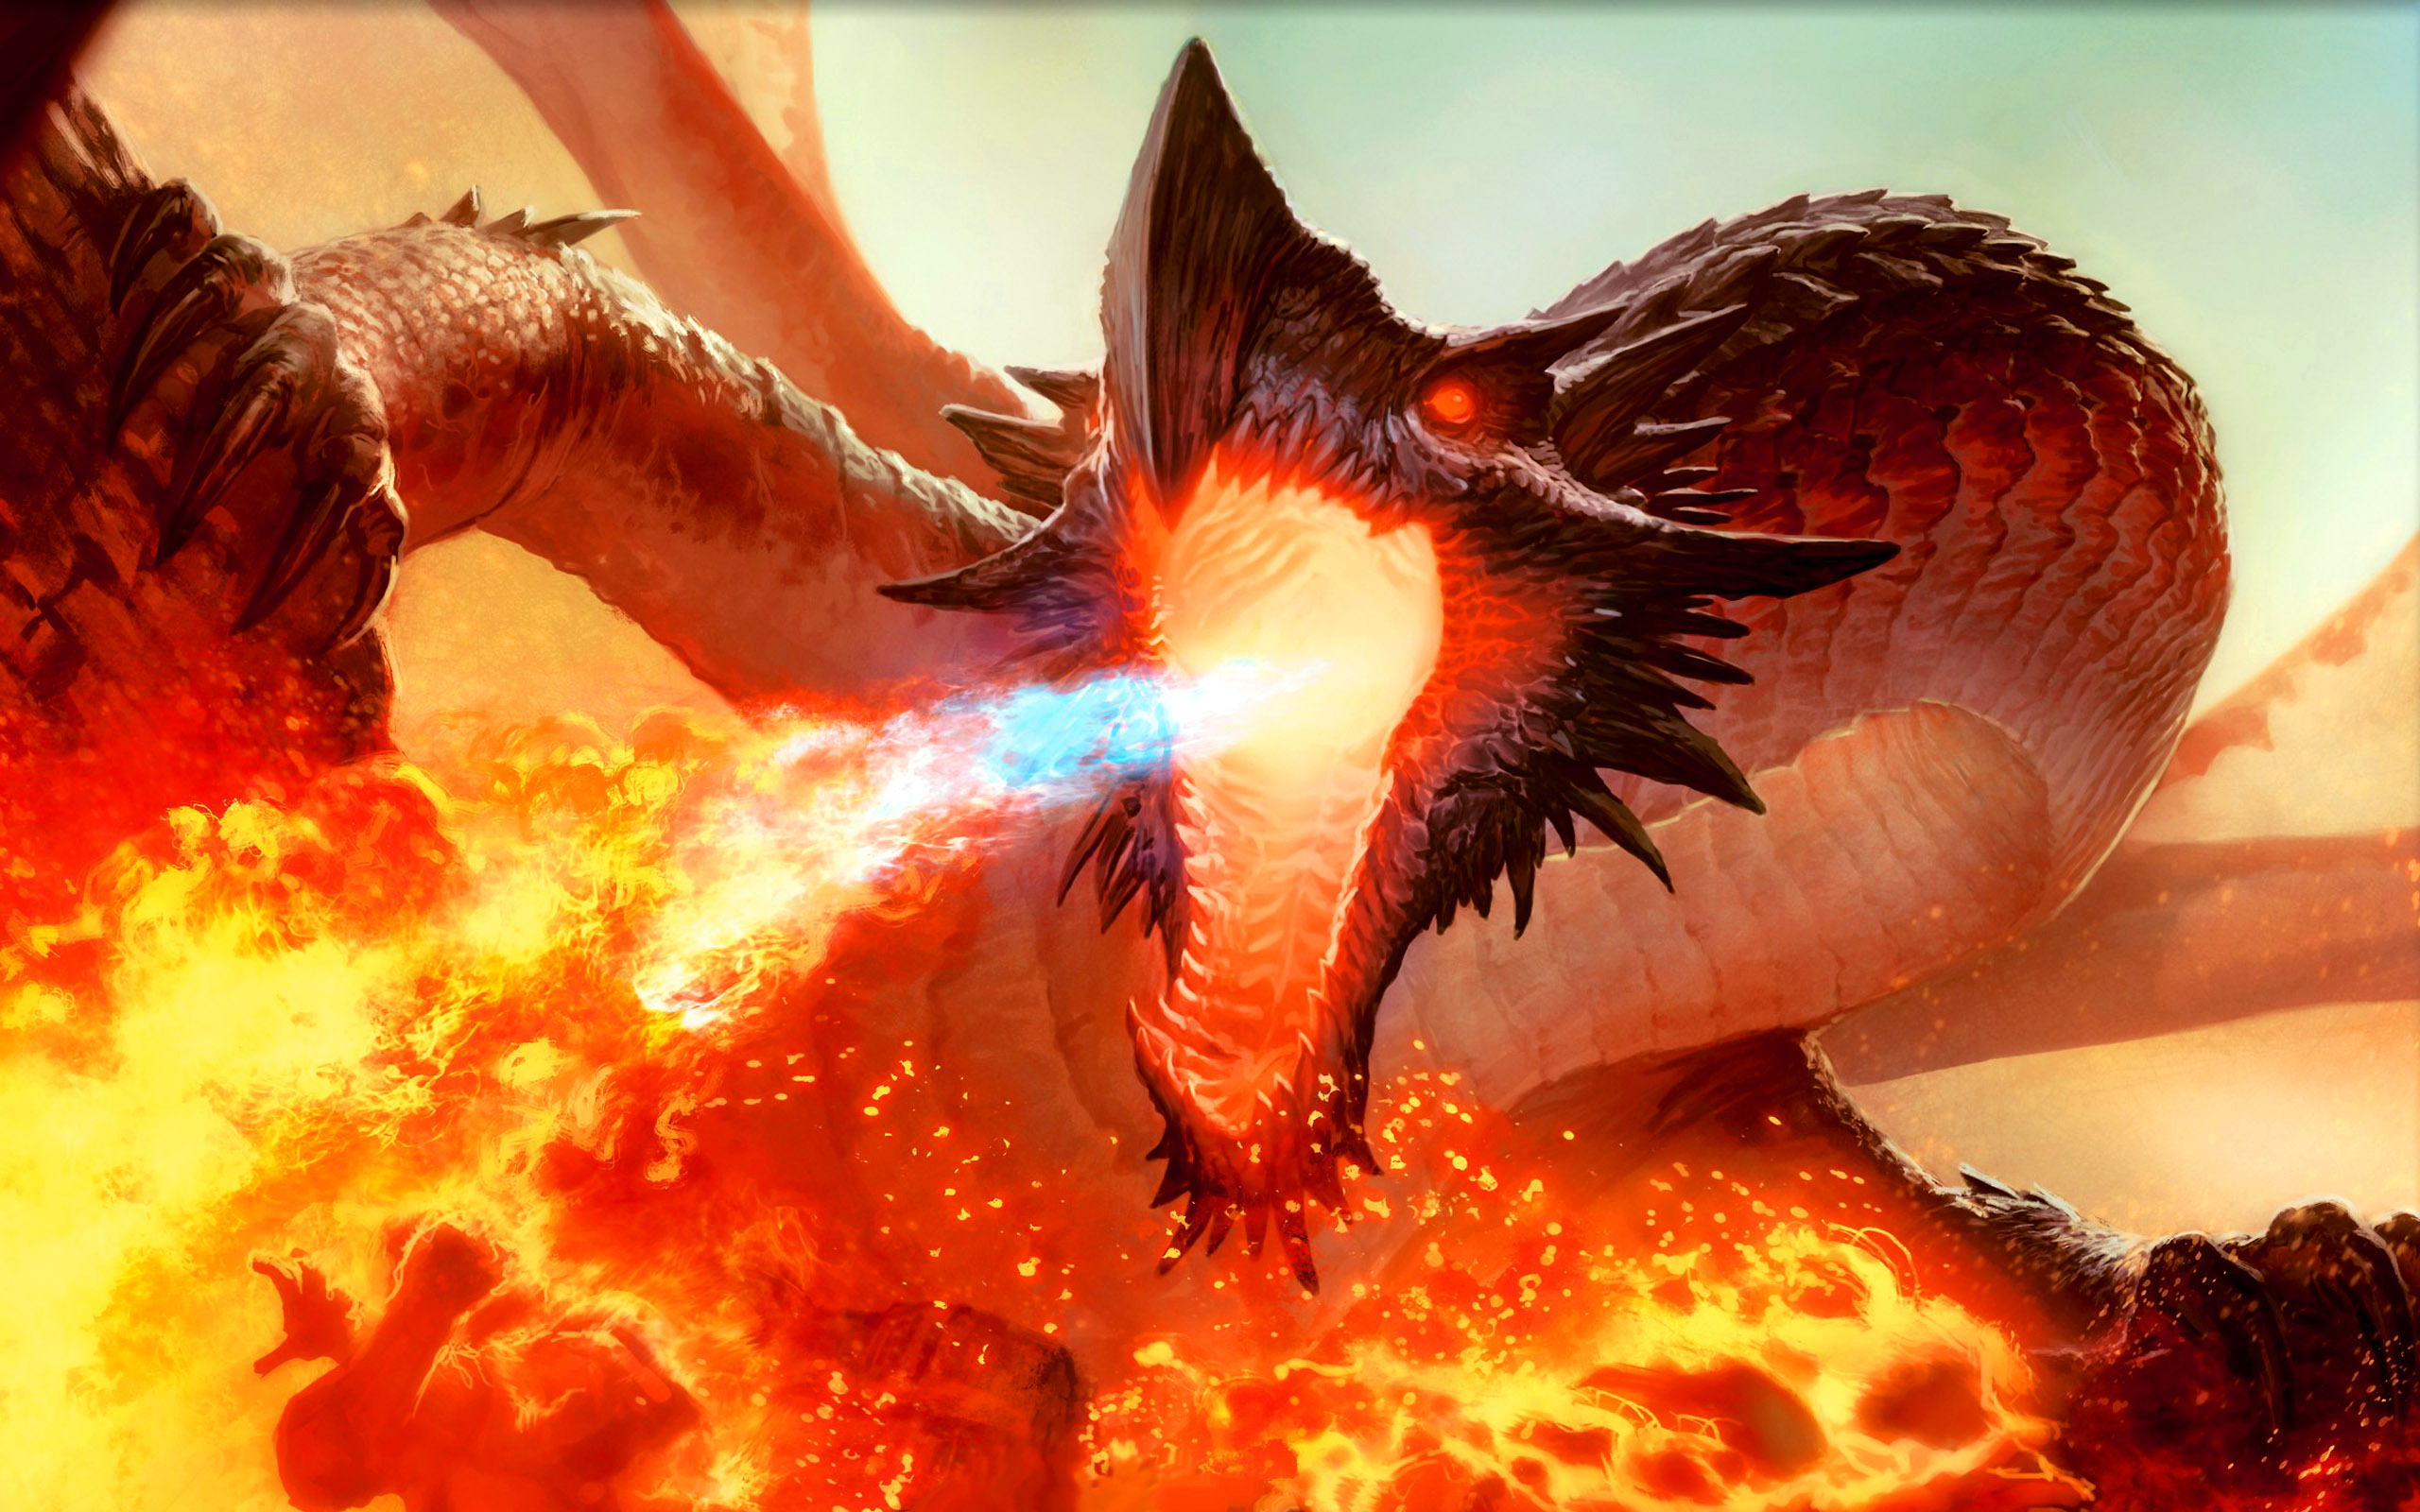 Fantasy - Magic The Gathering  - Mtg - Ancient Hellkite - Dragon Wallpaper